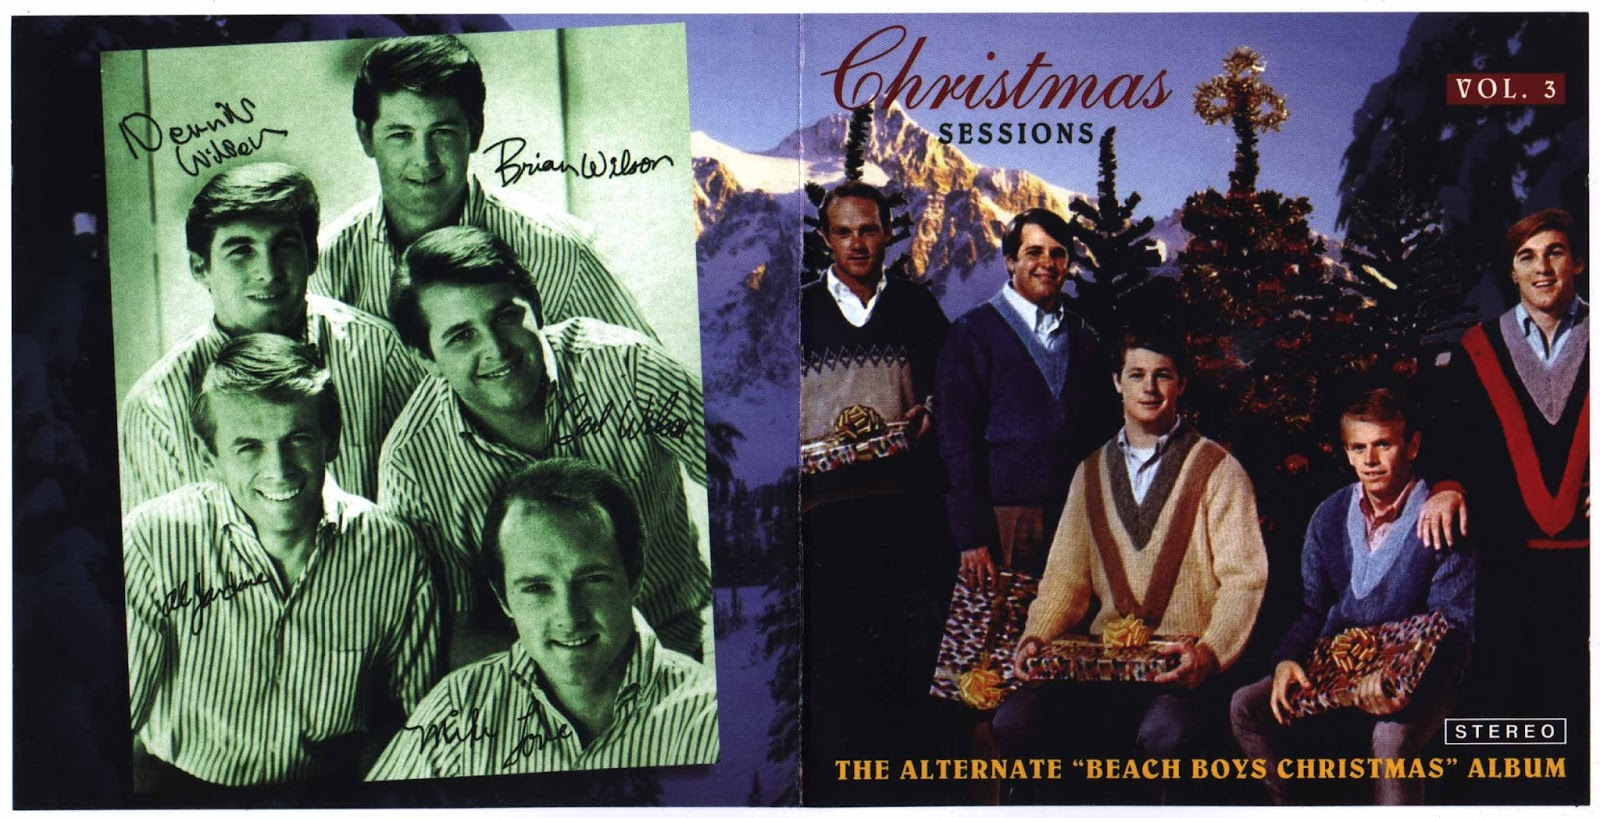 cd 3 the alternate beach boys christmas album 01 little sain nick vocal stereo mix 02 the man with all toys vocal overdub - Beach Boys Christmas Album